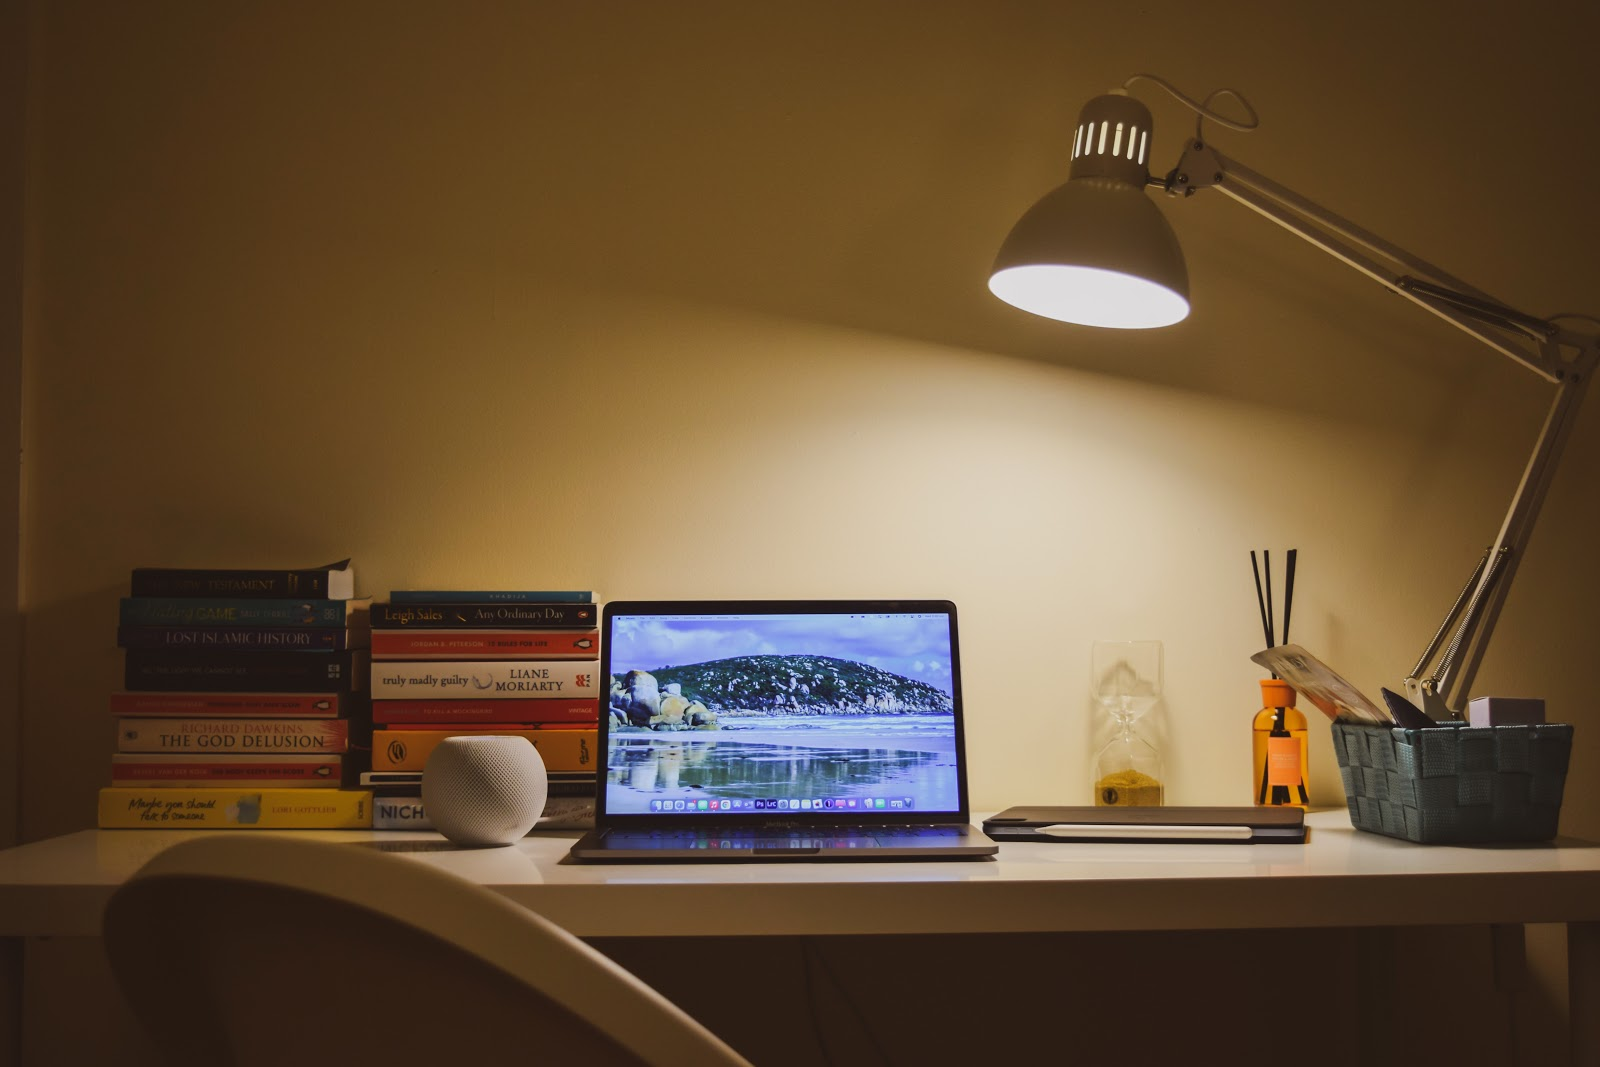 books, laptop, and lamp in a workstation